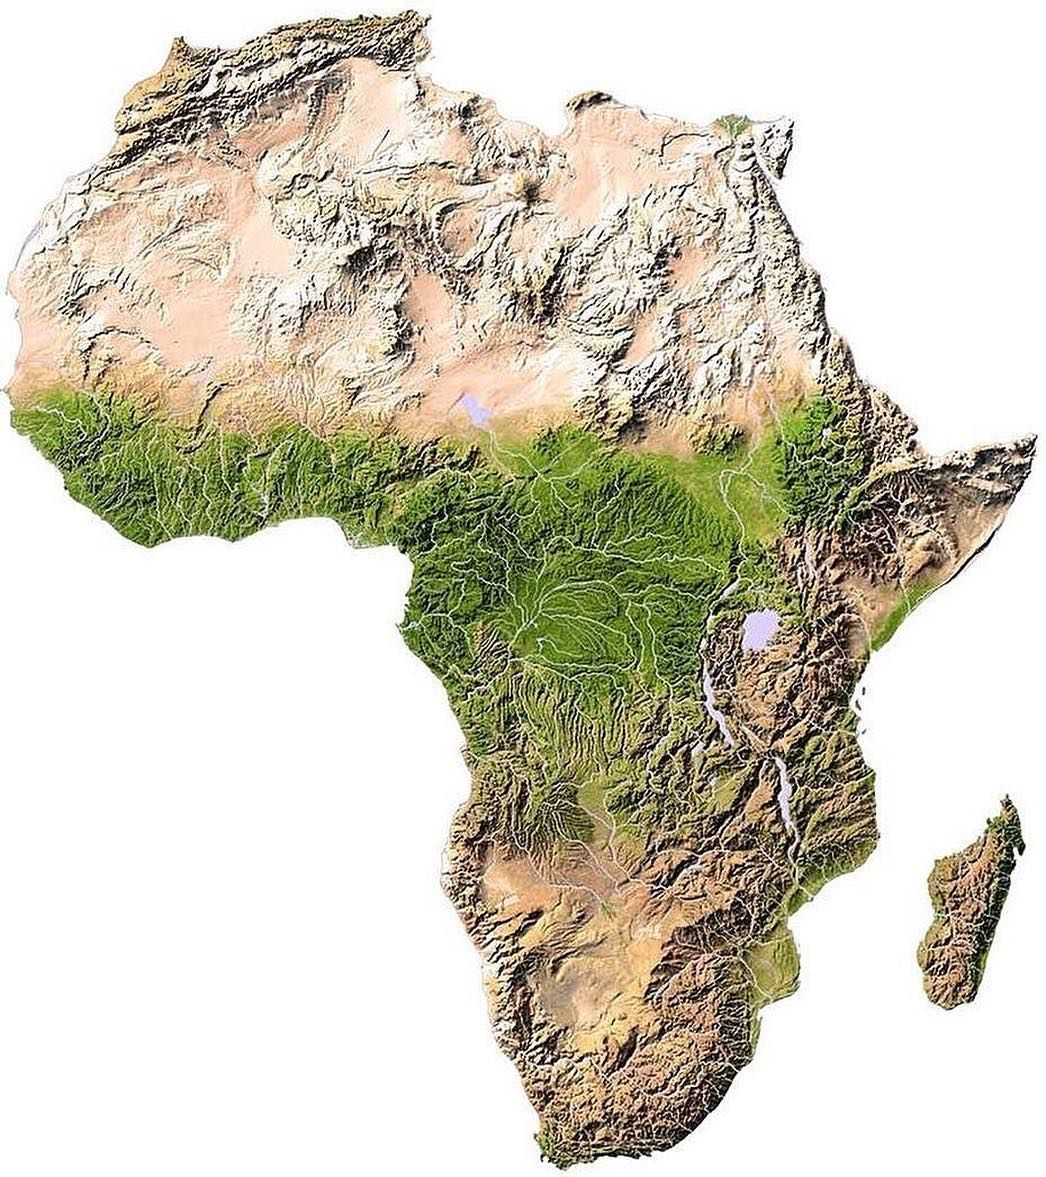 Elevation Map Of Africa With Key.Mapscaping On Twitter Topographic Map Of Africa Https T